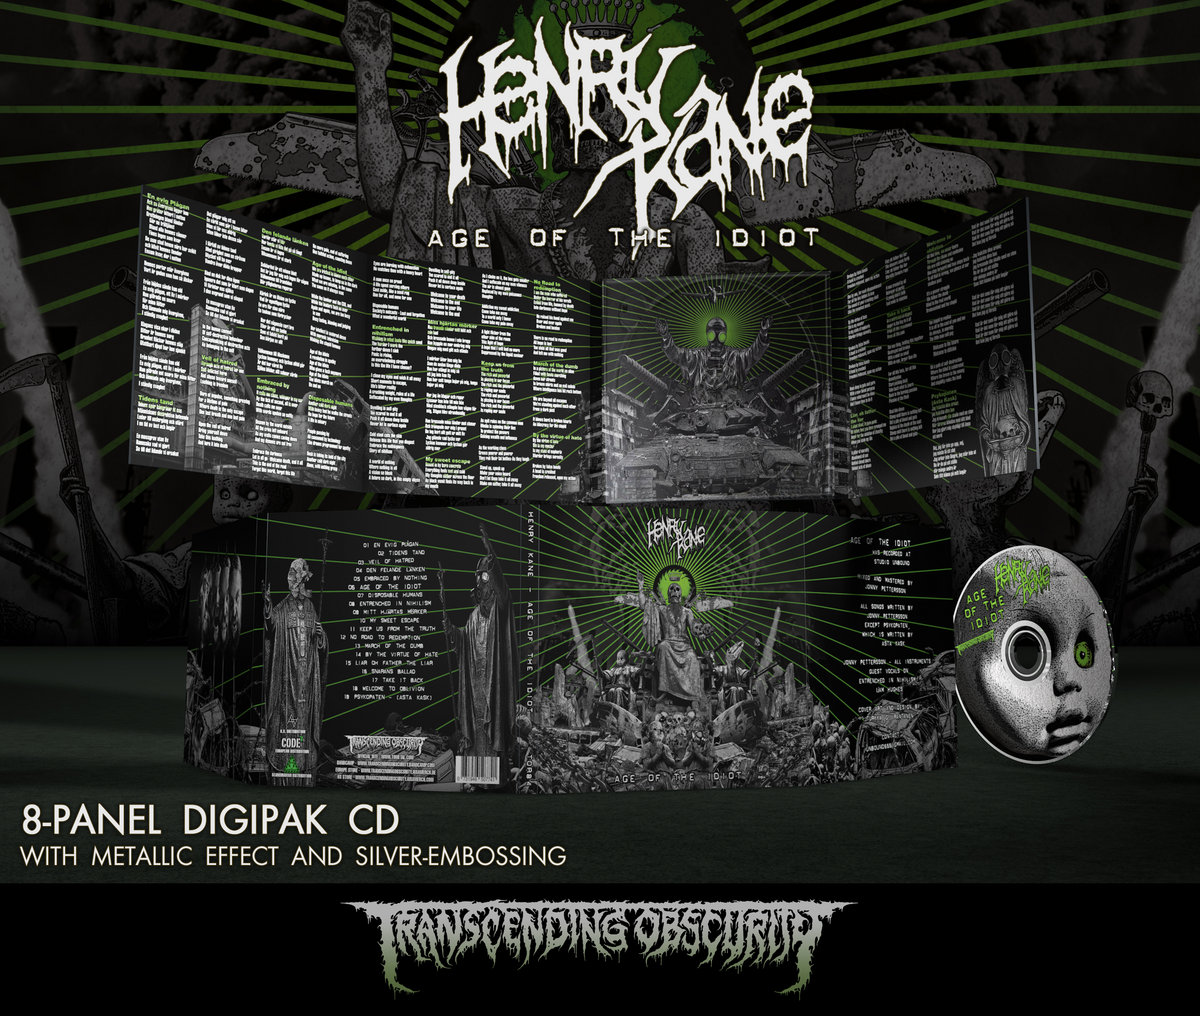 HENRY KANE 8-Panel Digipak CD with Metallic Effect and Silver Embossing